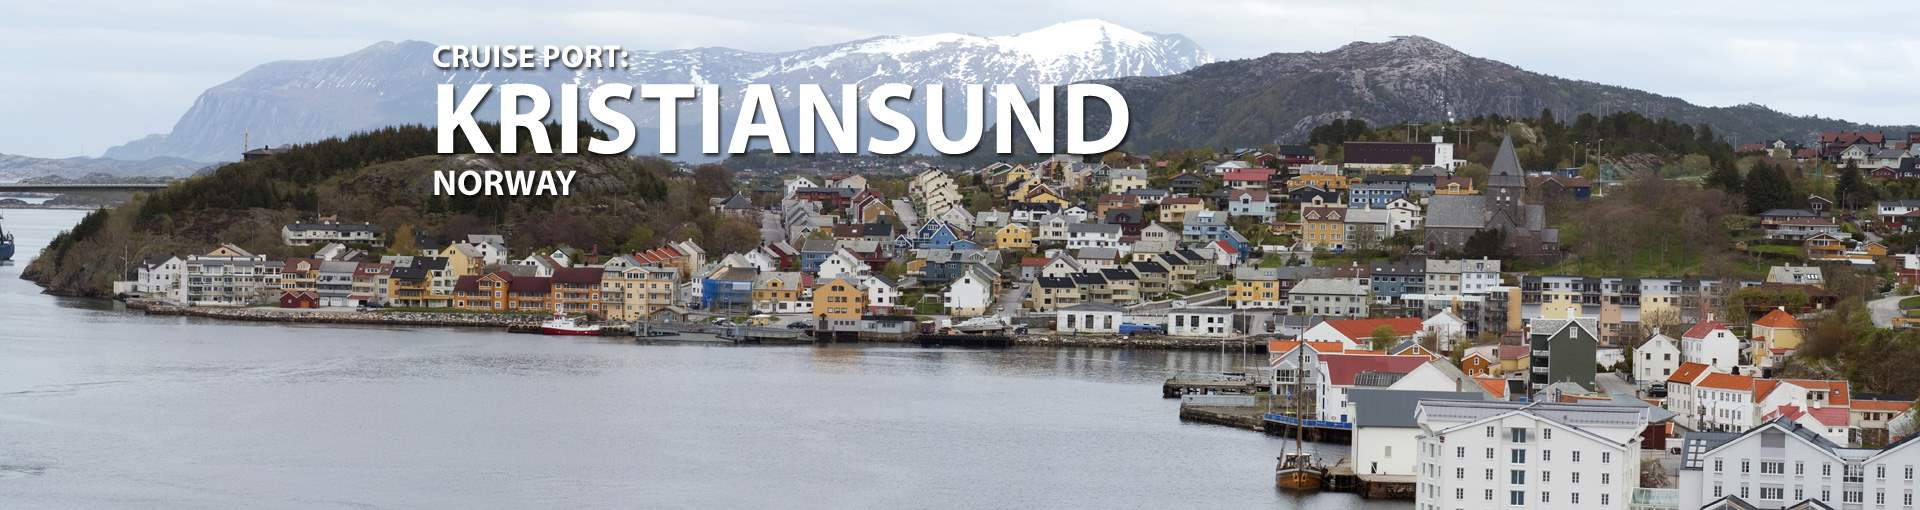 Cruises to Kristiansund, Norway